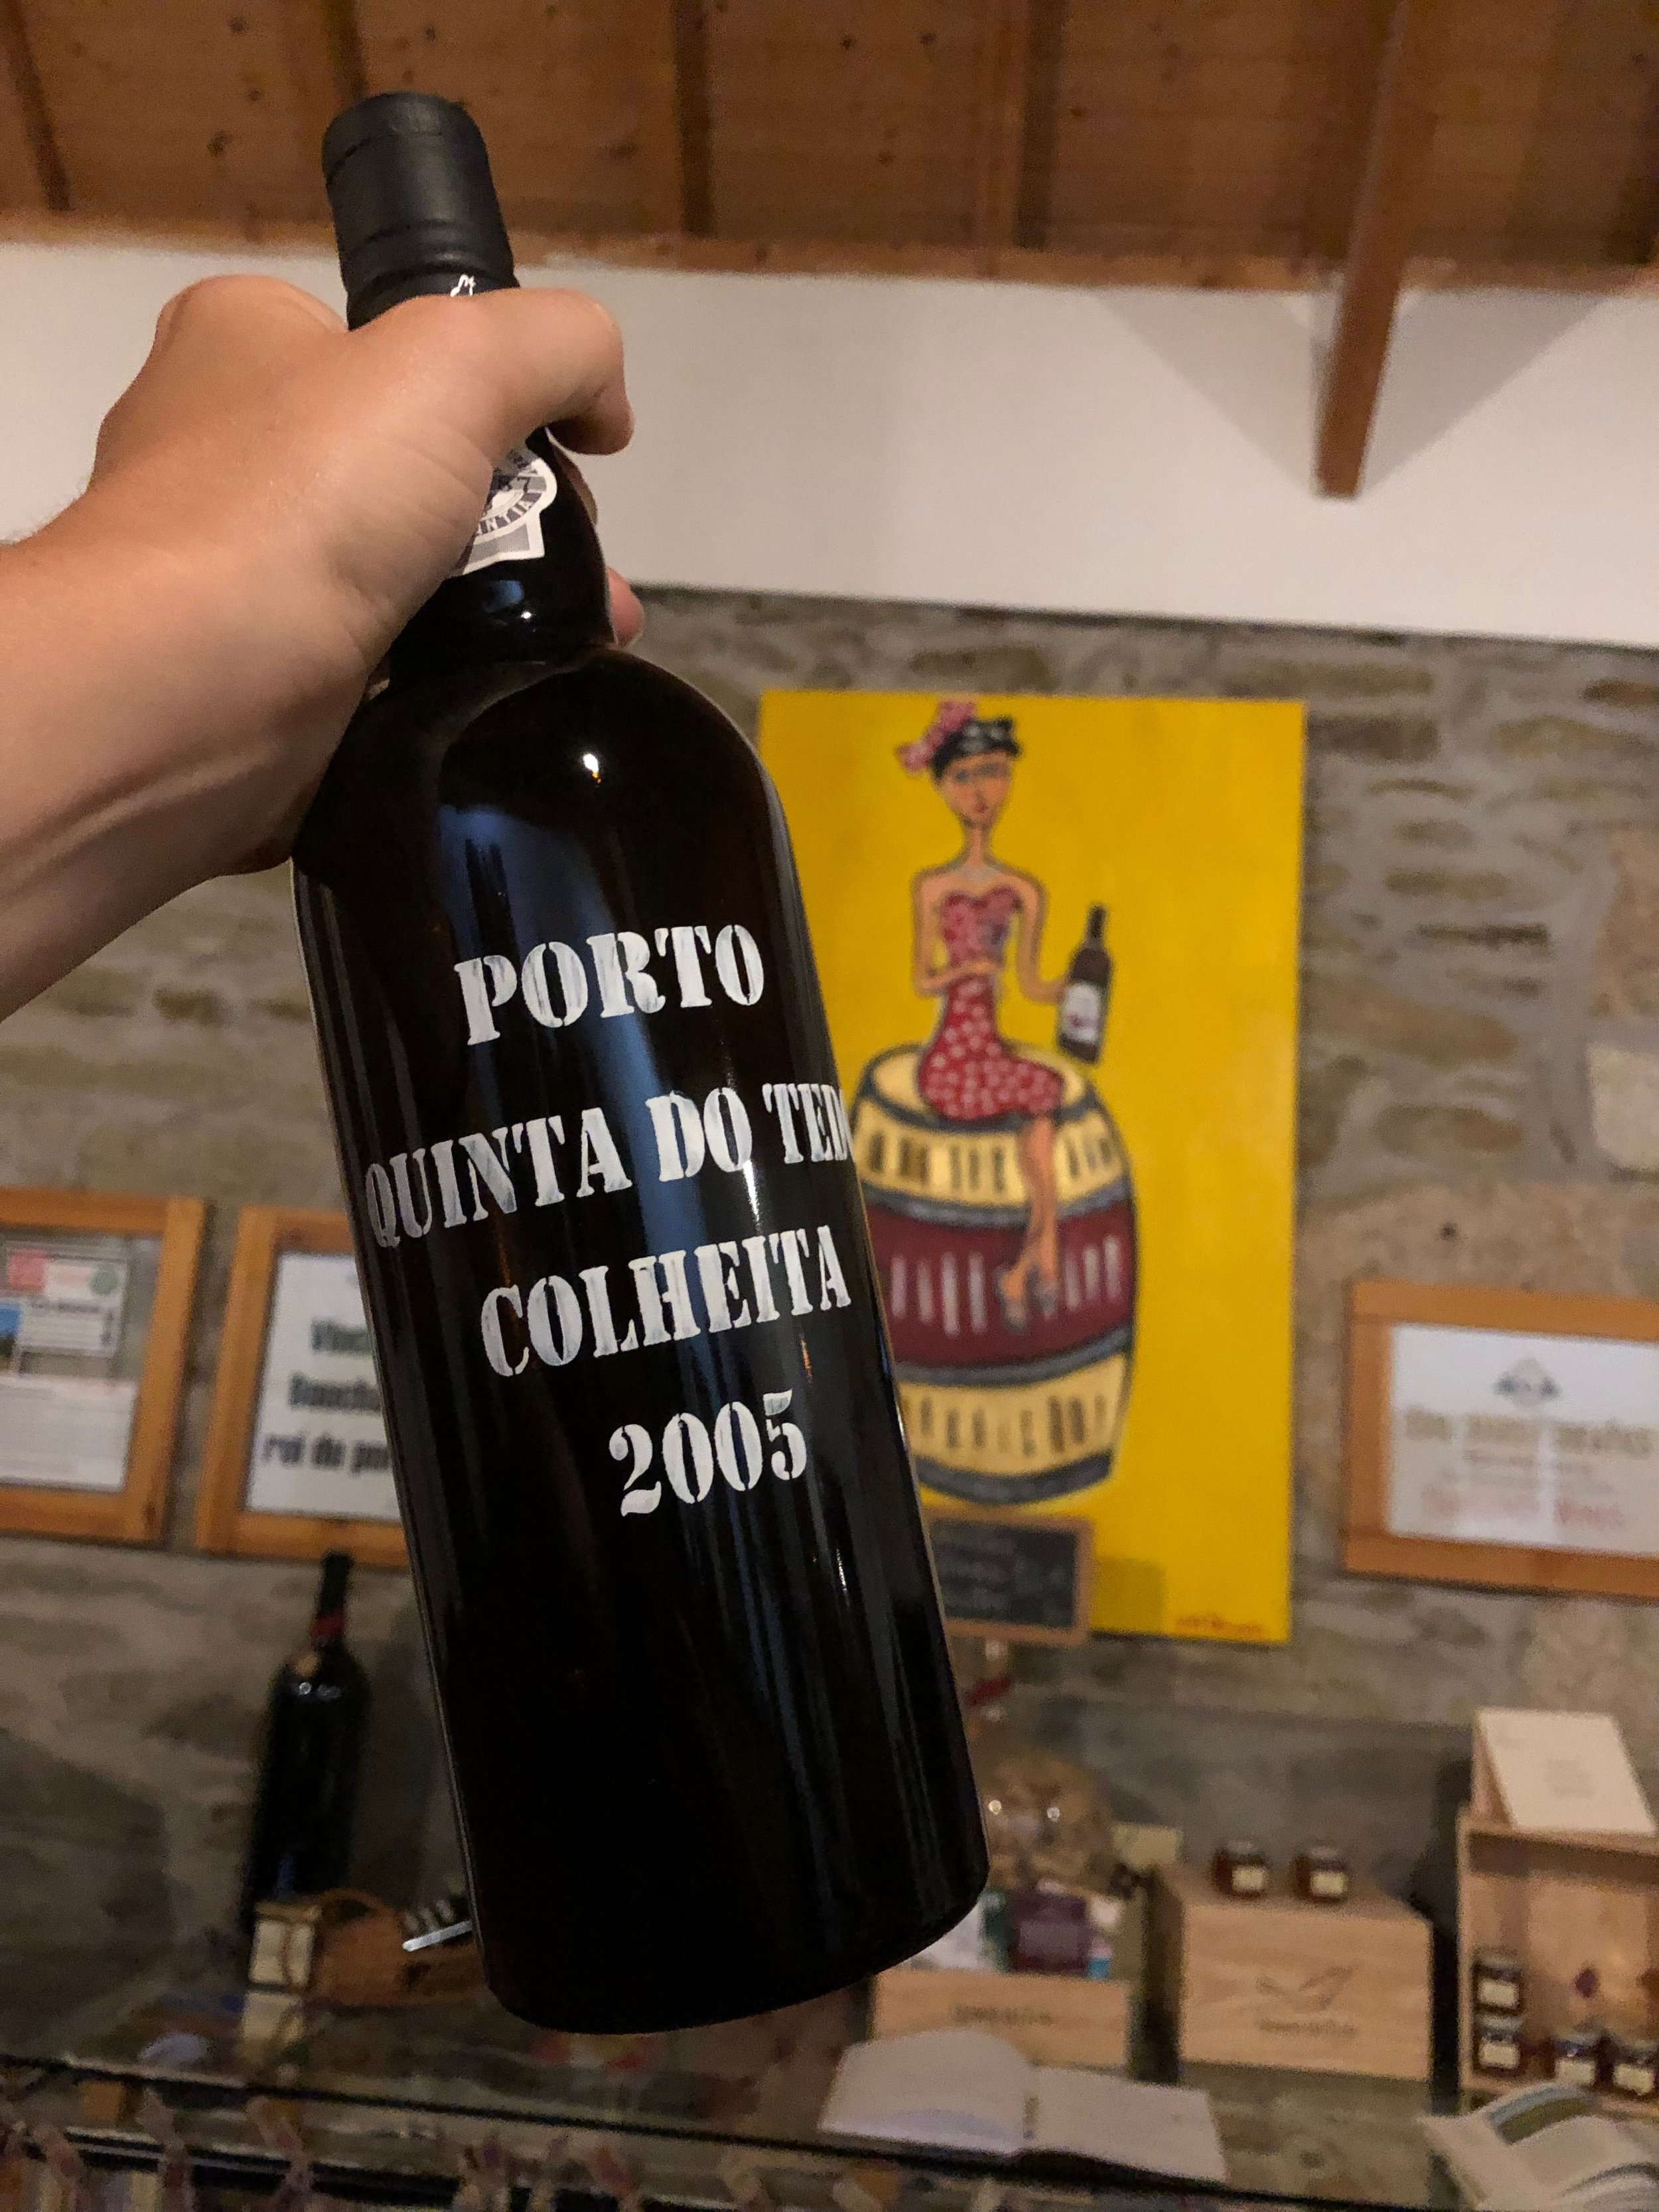 Our first  Colheita  - an aged Tawny  Port  made with grapes from a single vintage. ...a rare pleasure!